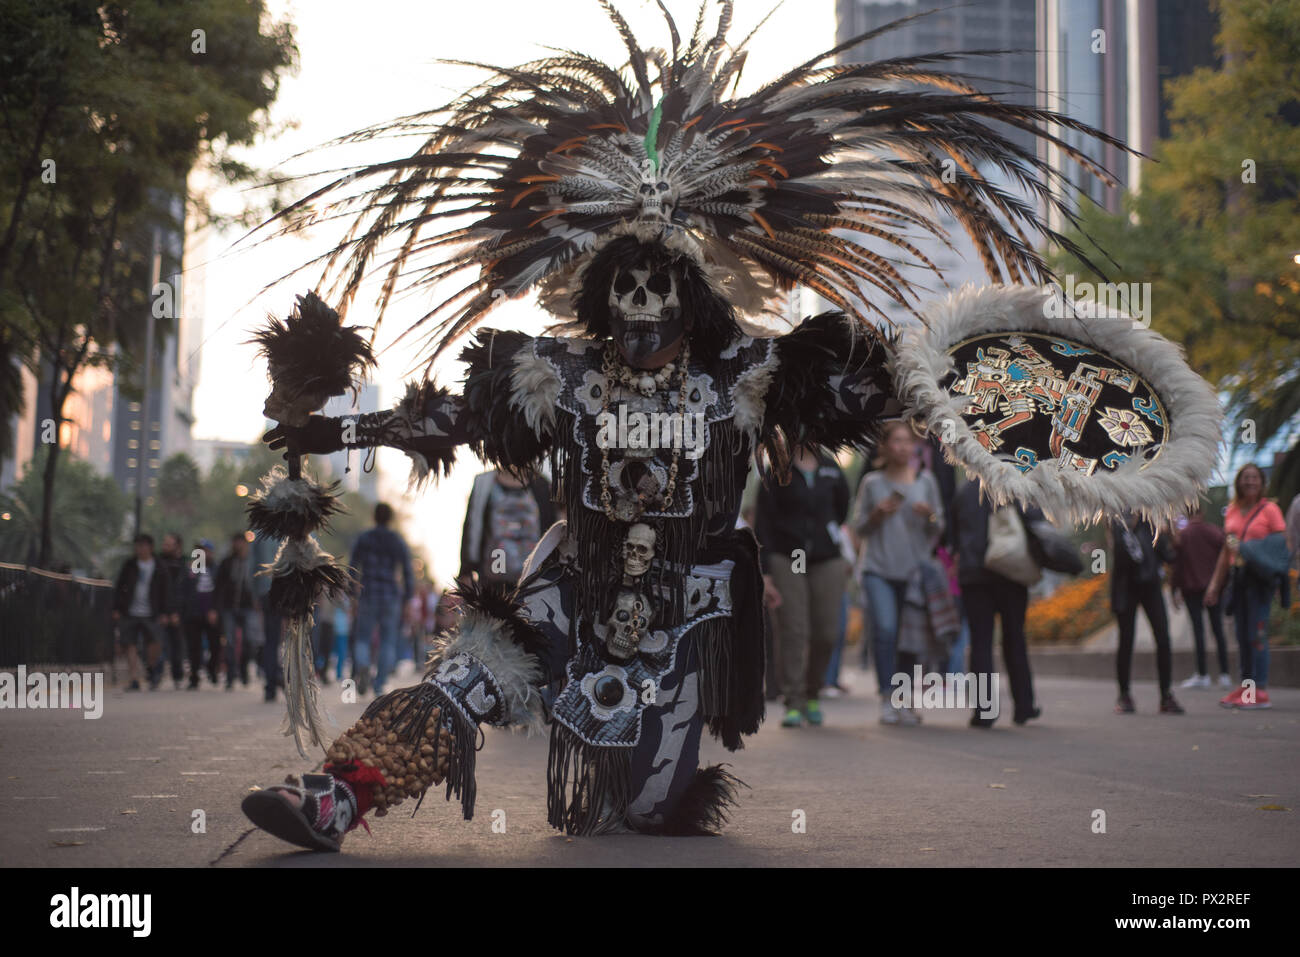 A man dressed like an Aztec warrior wearing typical makeup at the Day of the Dead parade in Mexico City Stock Photo